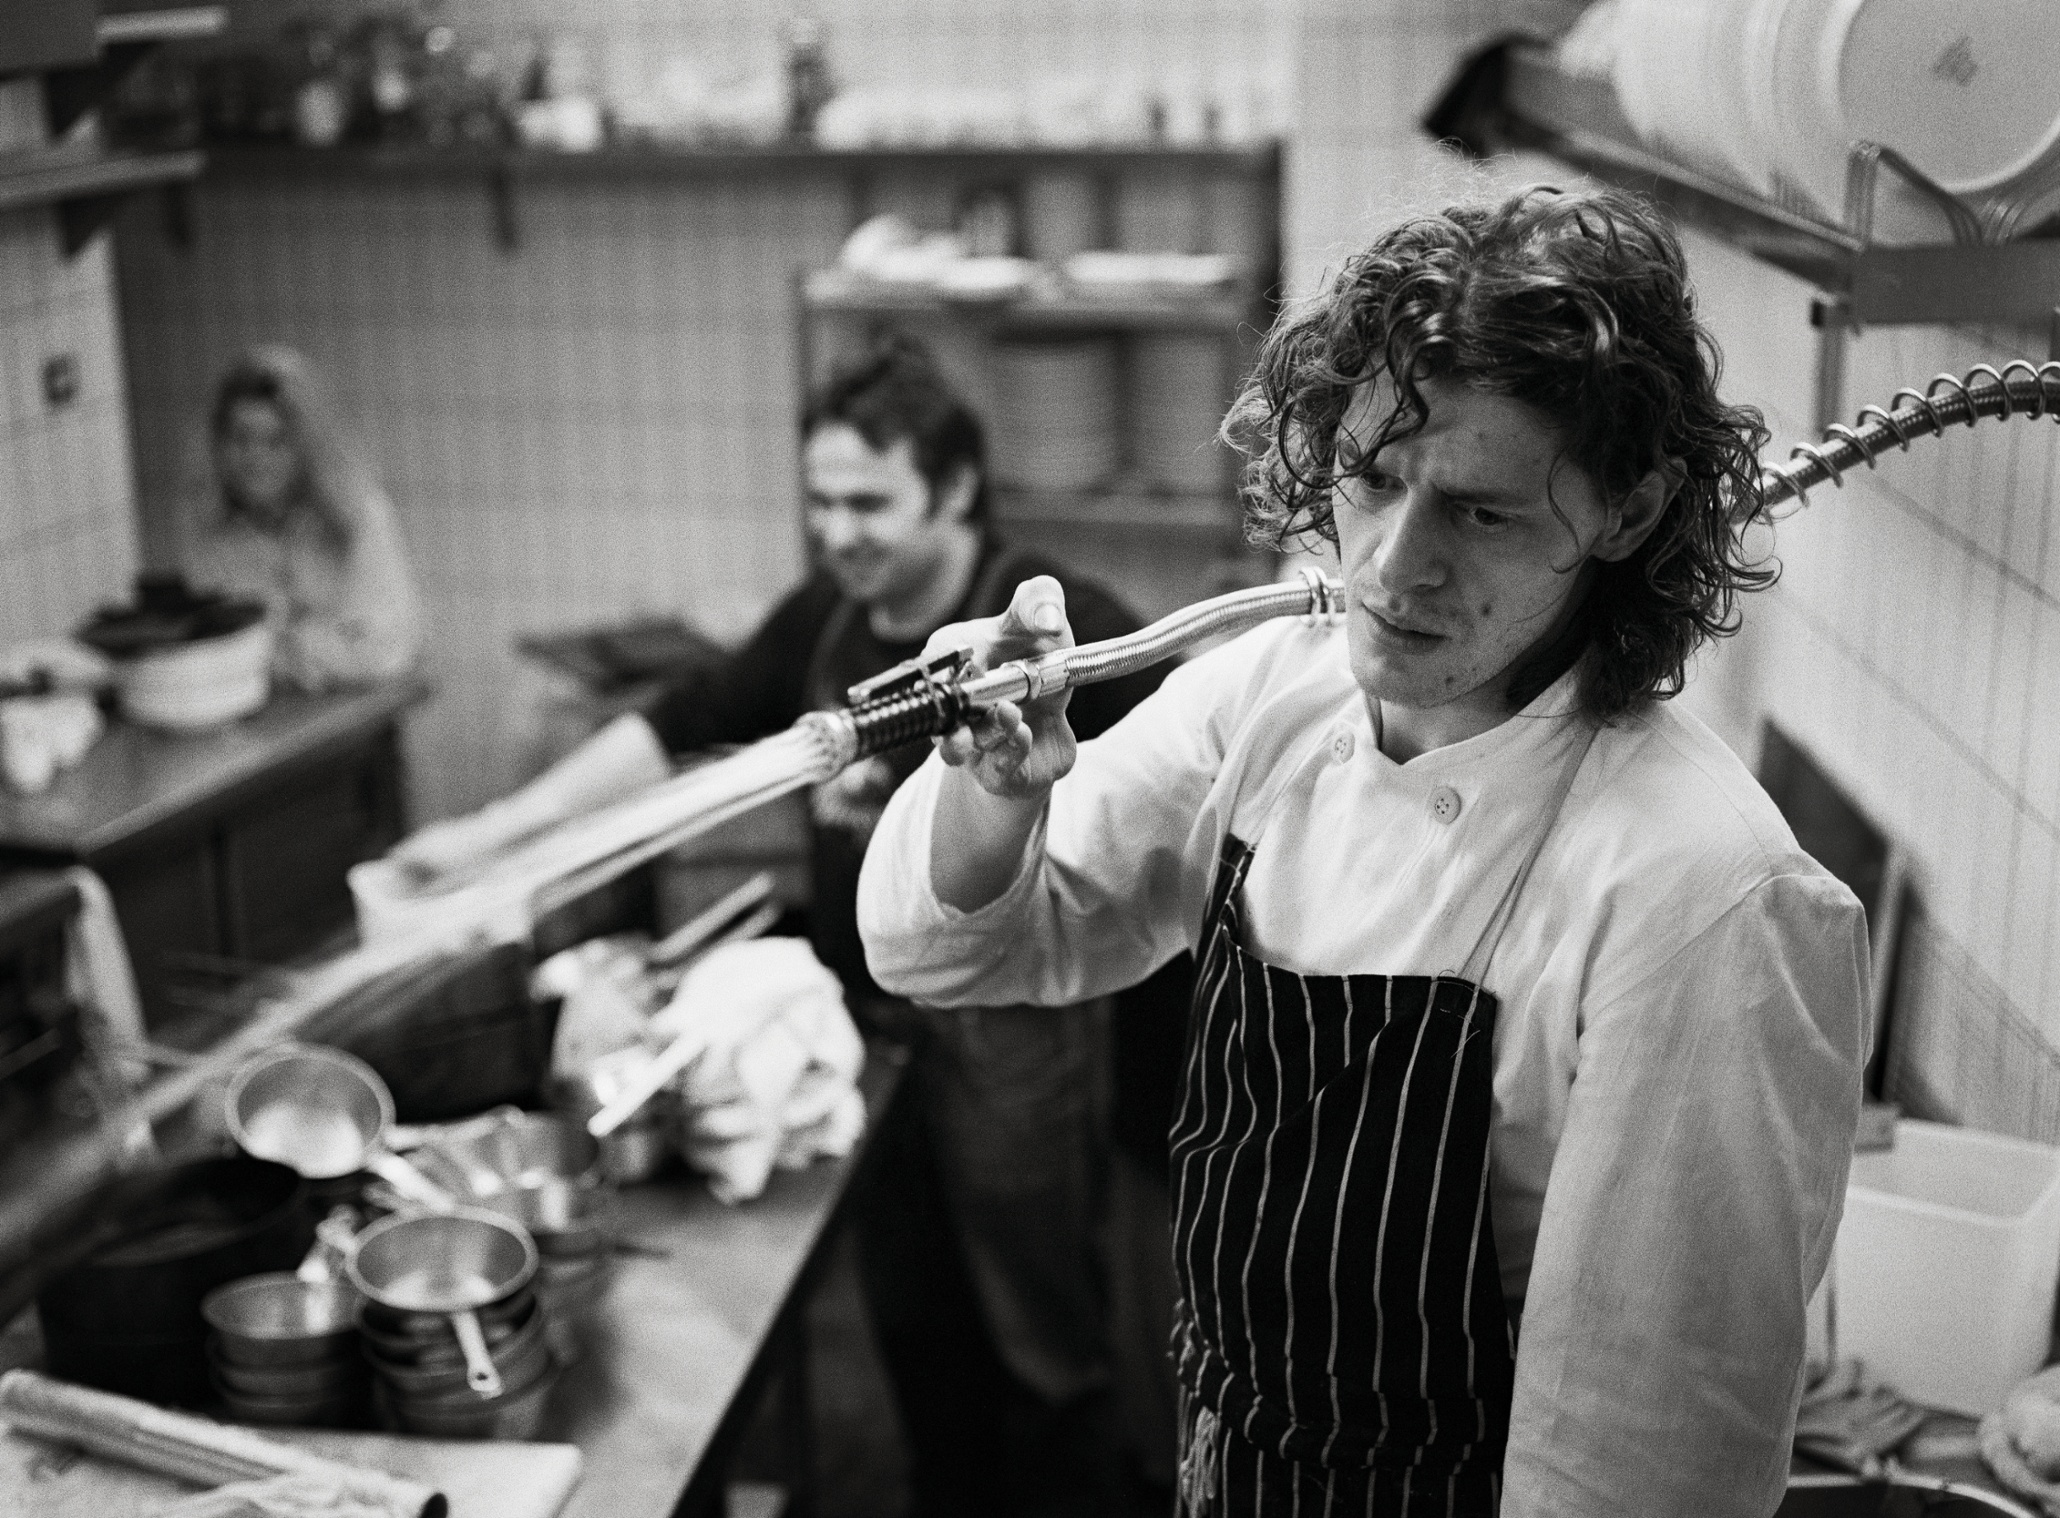 Marco pierre white in pictures life and style the for Marco pirotta chef